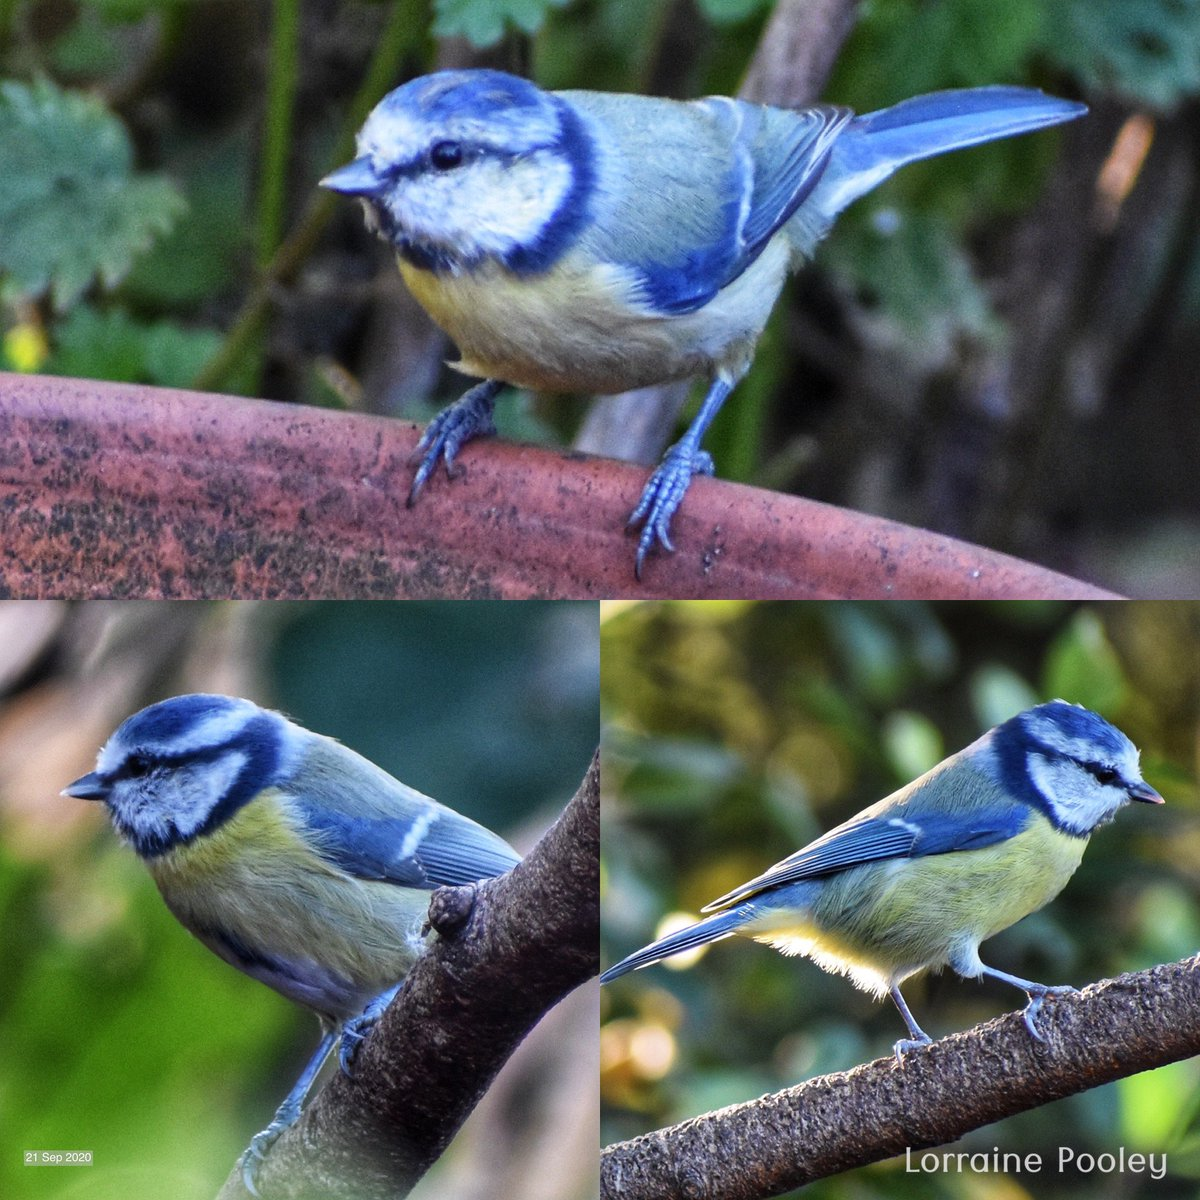 There are lots of #Bluetits on the #Allotment 🙏  Confident, aware, quick, grab a nut & go, bossy but beautiful #Birds   #tinybirds #Garden #wildlifephotography https://t.co/HXAulLxlGu